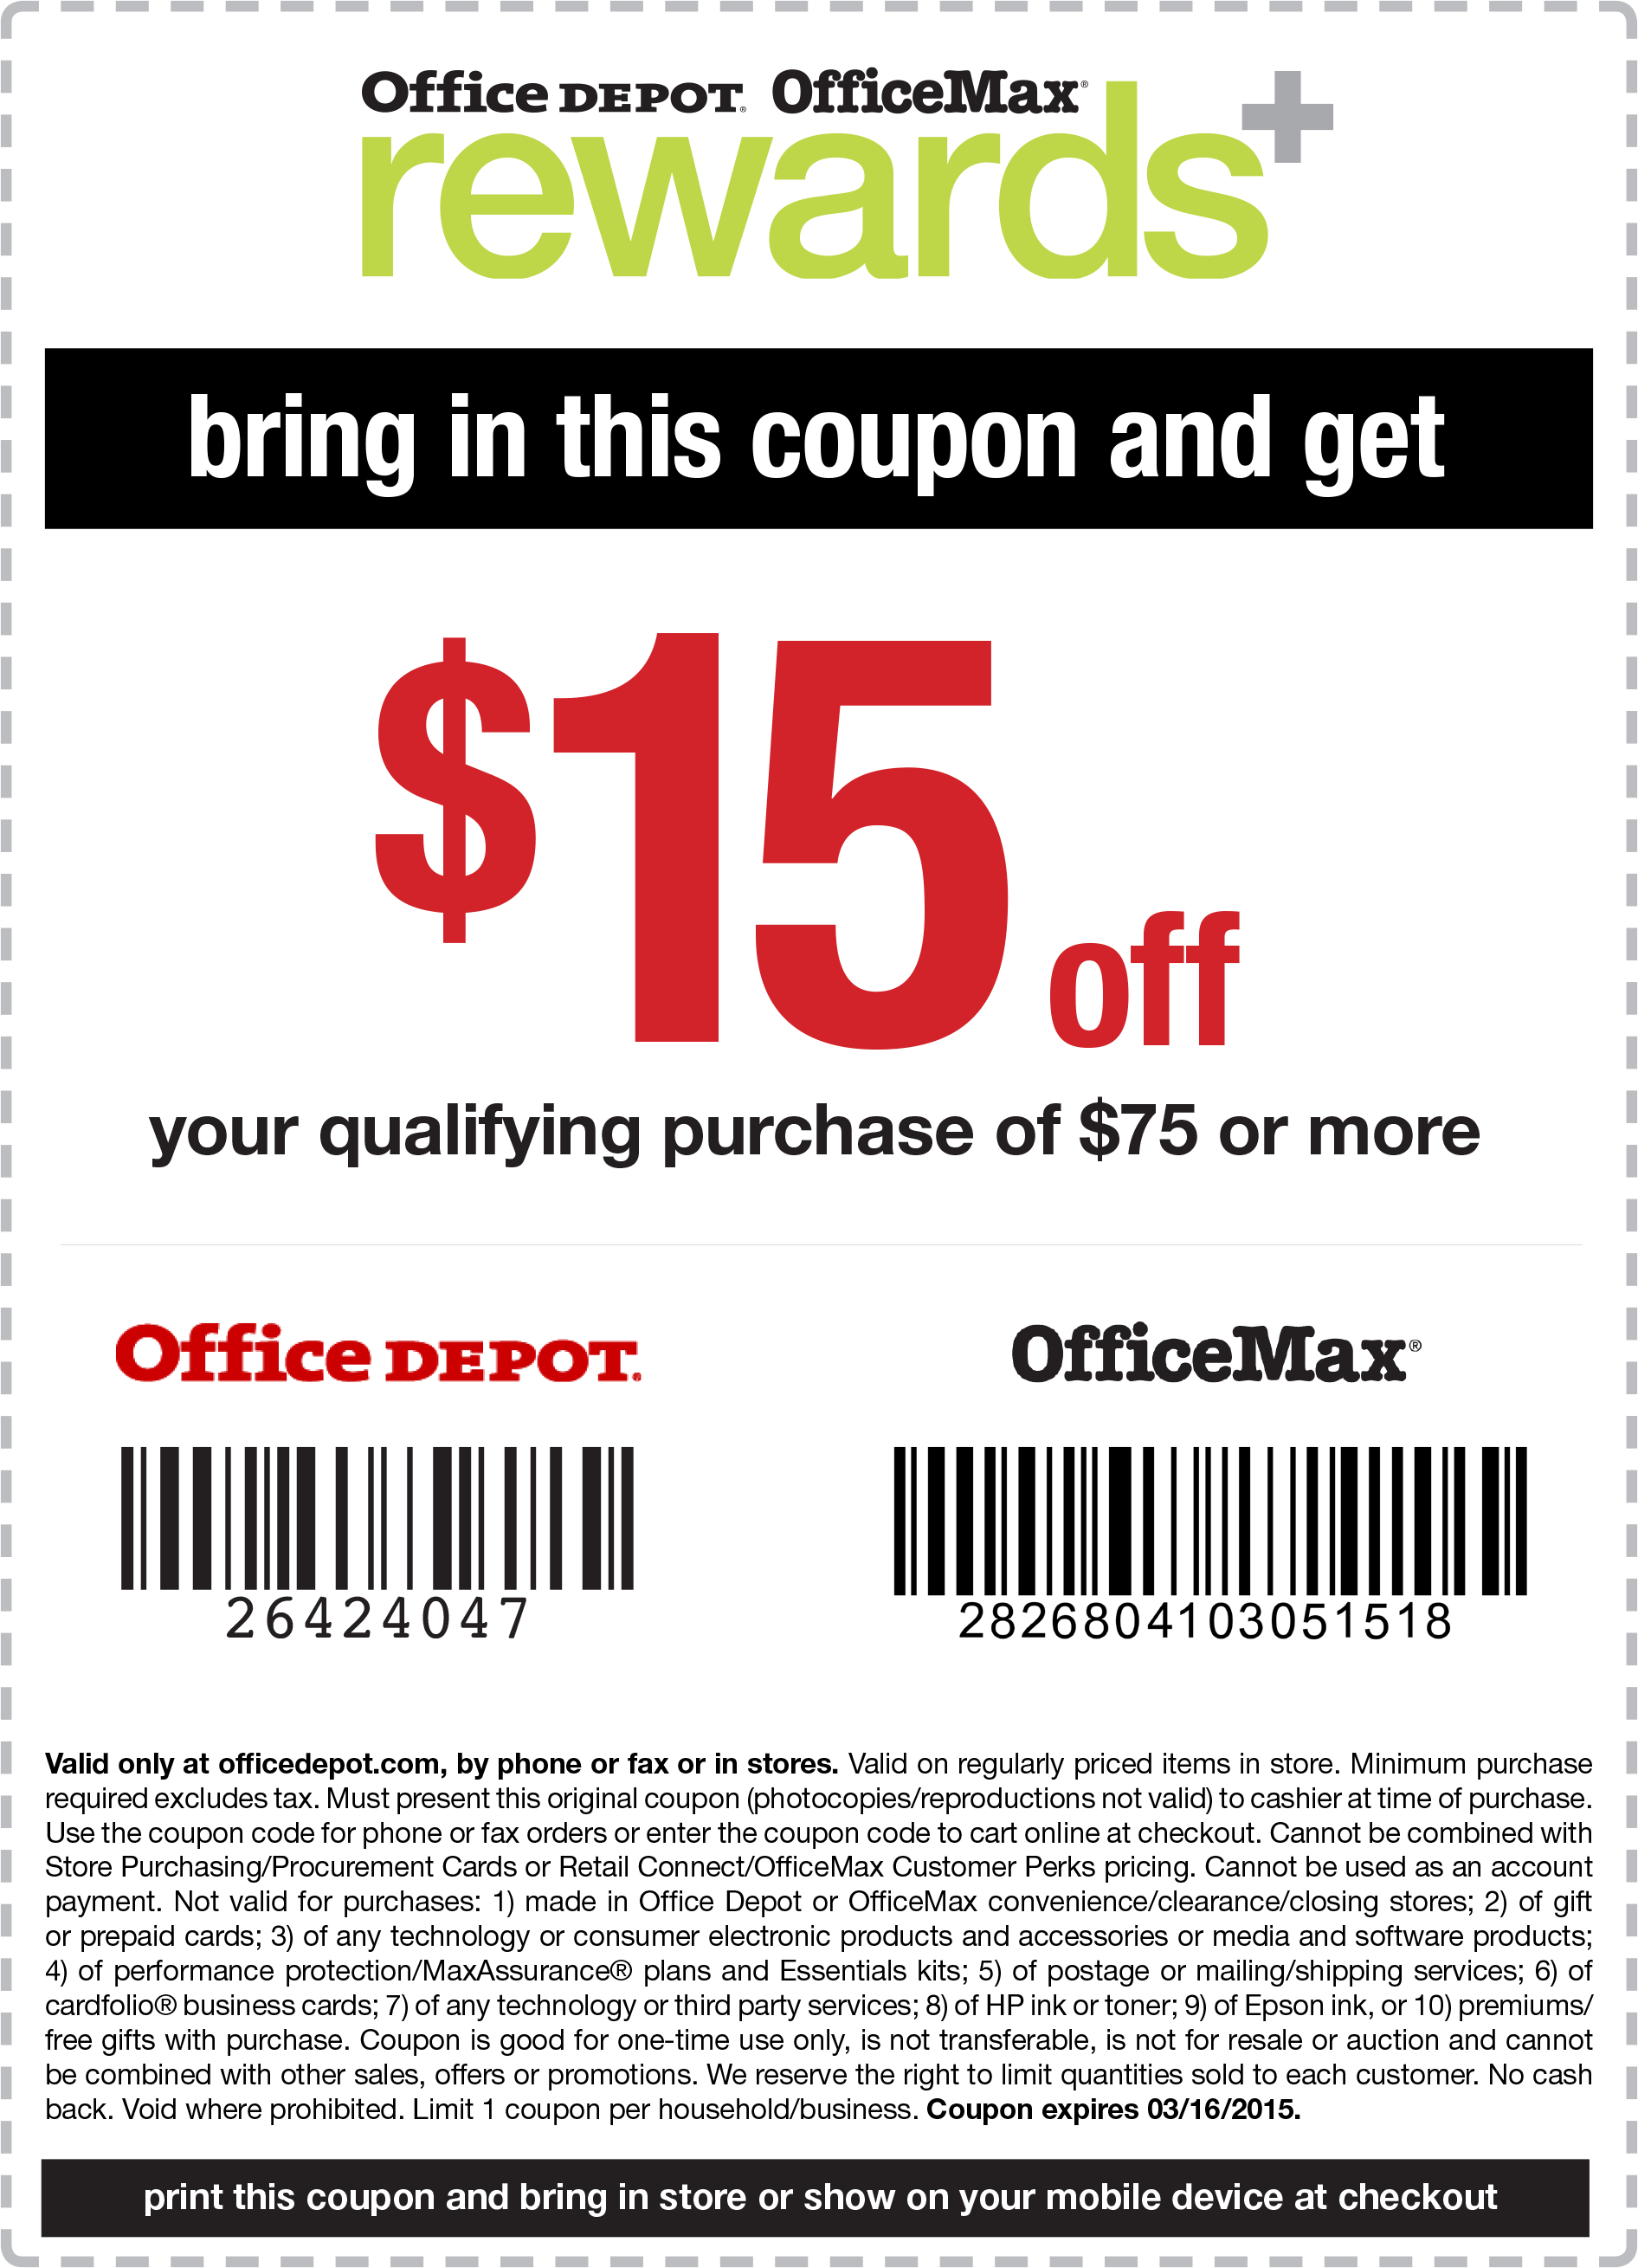 OfficeMax Coupon February 2017 $15 off $75 at Office Depot & OfficeMax, or online via promo code 26424047